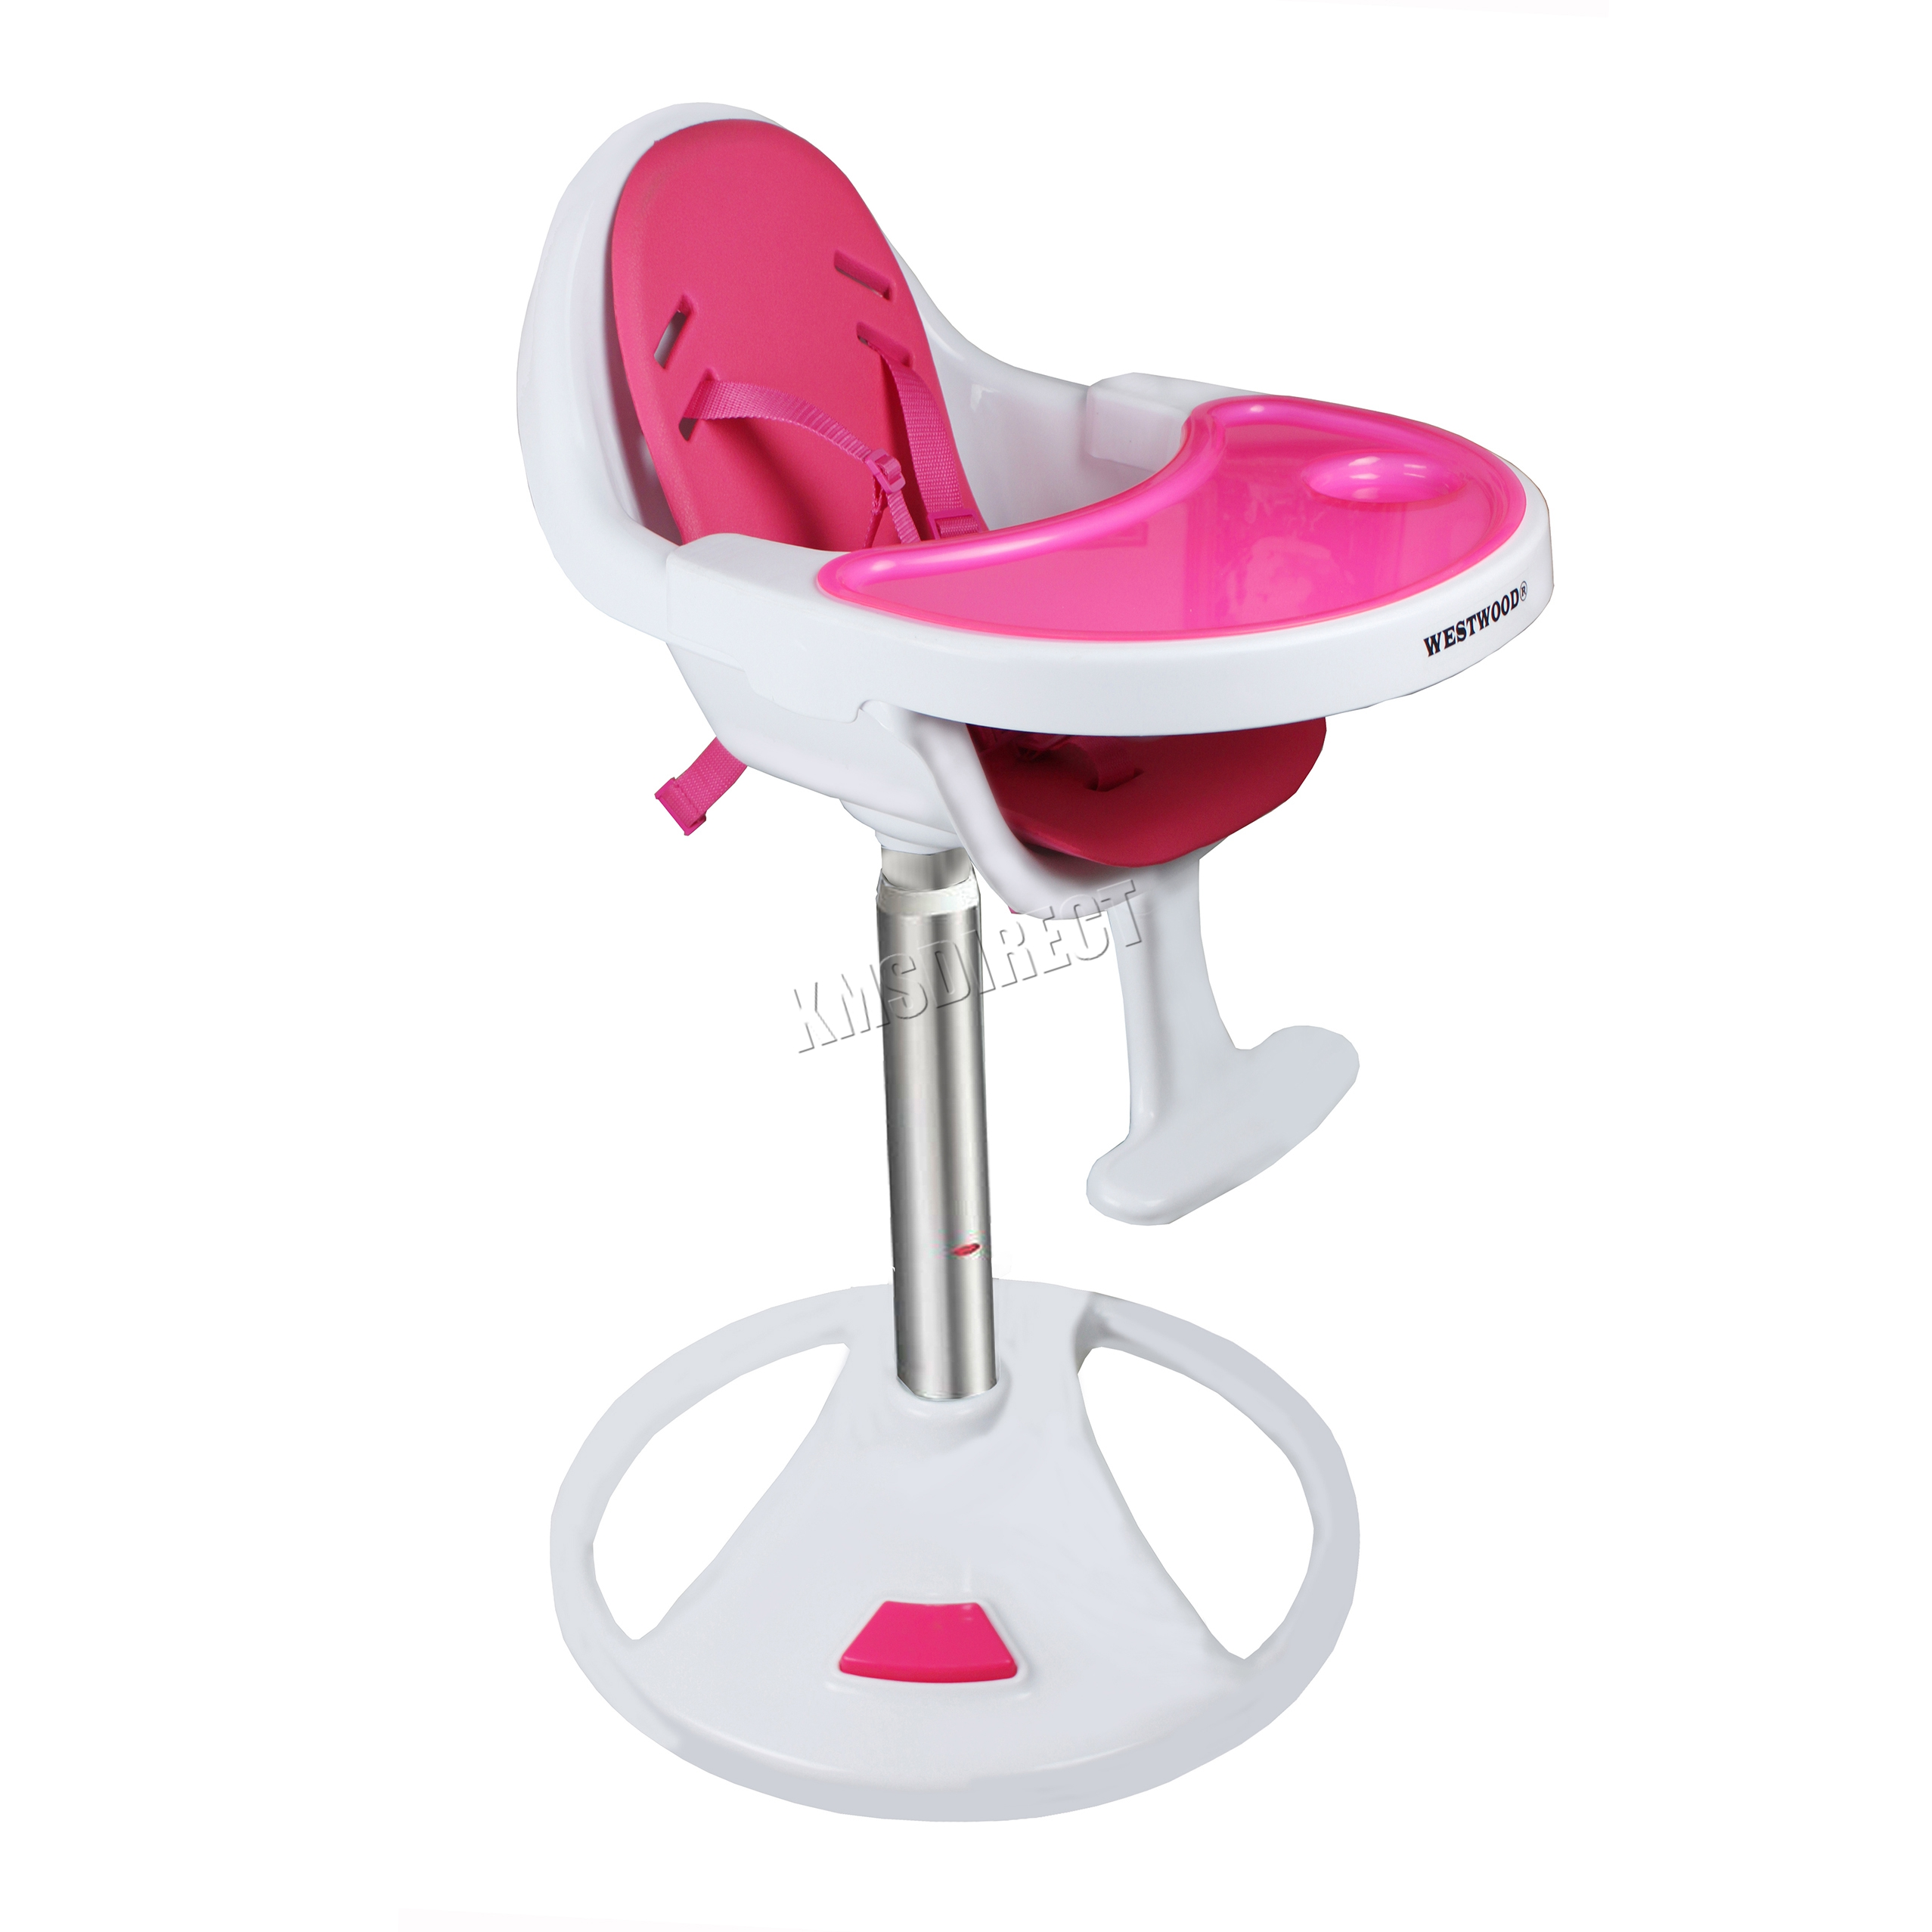 baby high chair for eating office chairs people with bad backs westwood table 360 swivel infant feeding